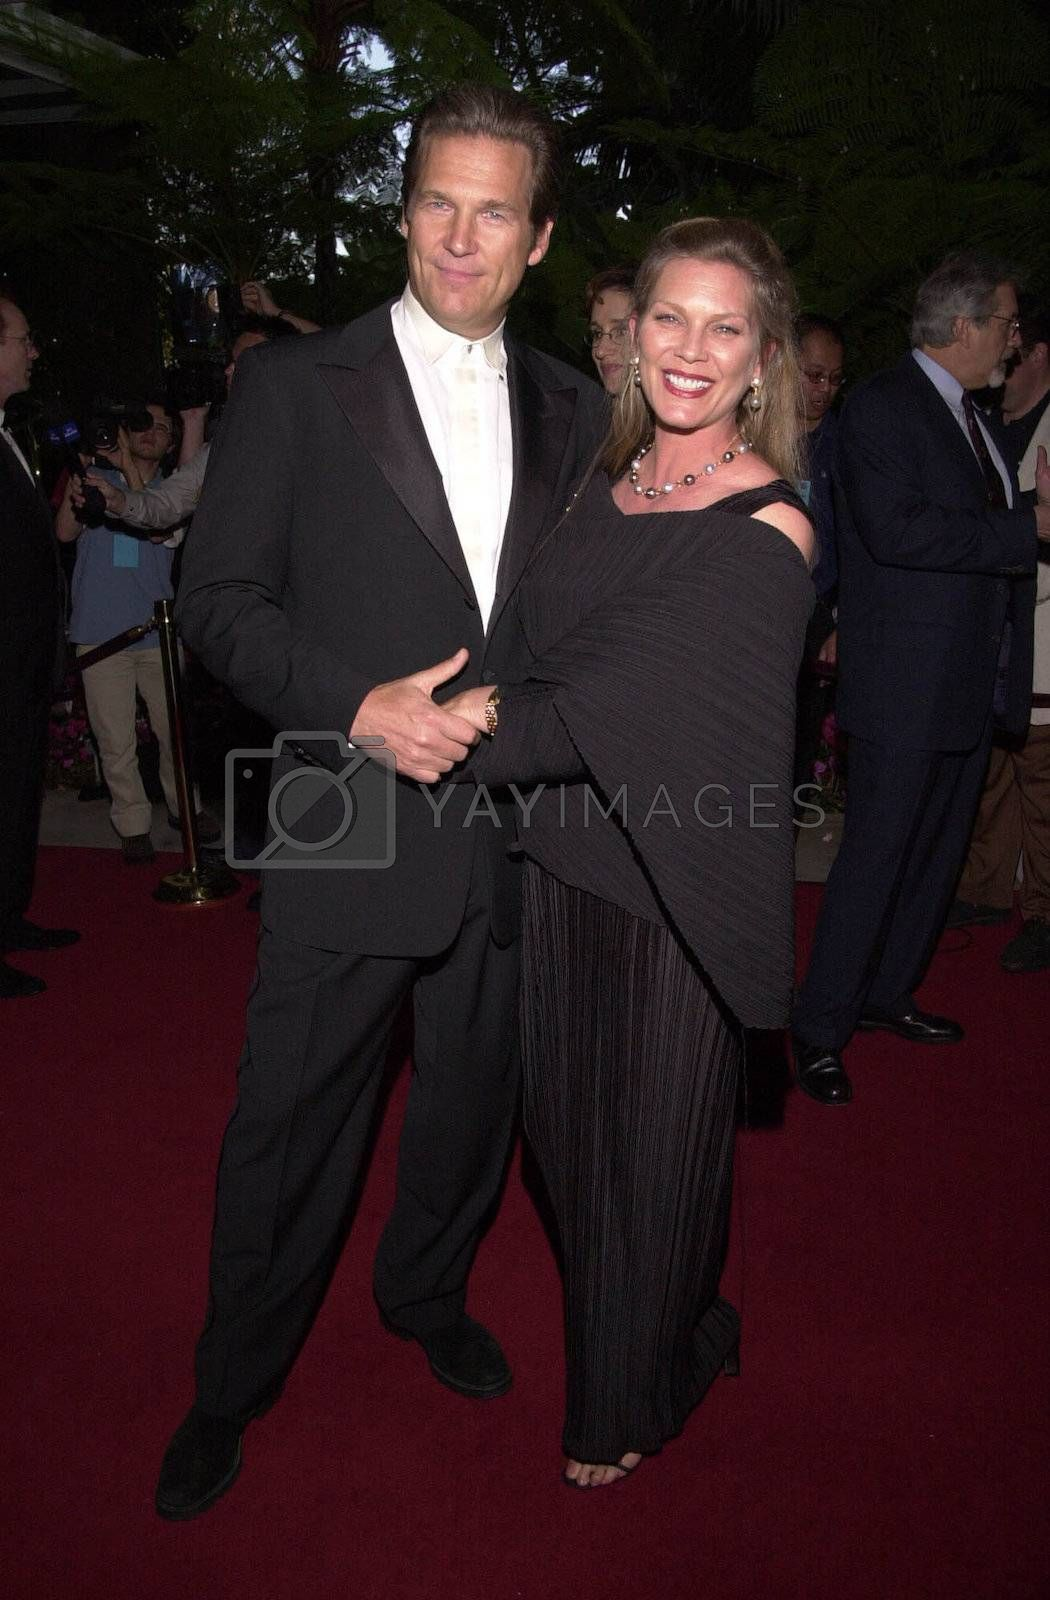 Jeff Bridges and wife Susan at the 4th Annual Raul Julia Ending Hunger Fund Benefit, Beverly Hills, 04-30-00